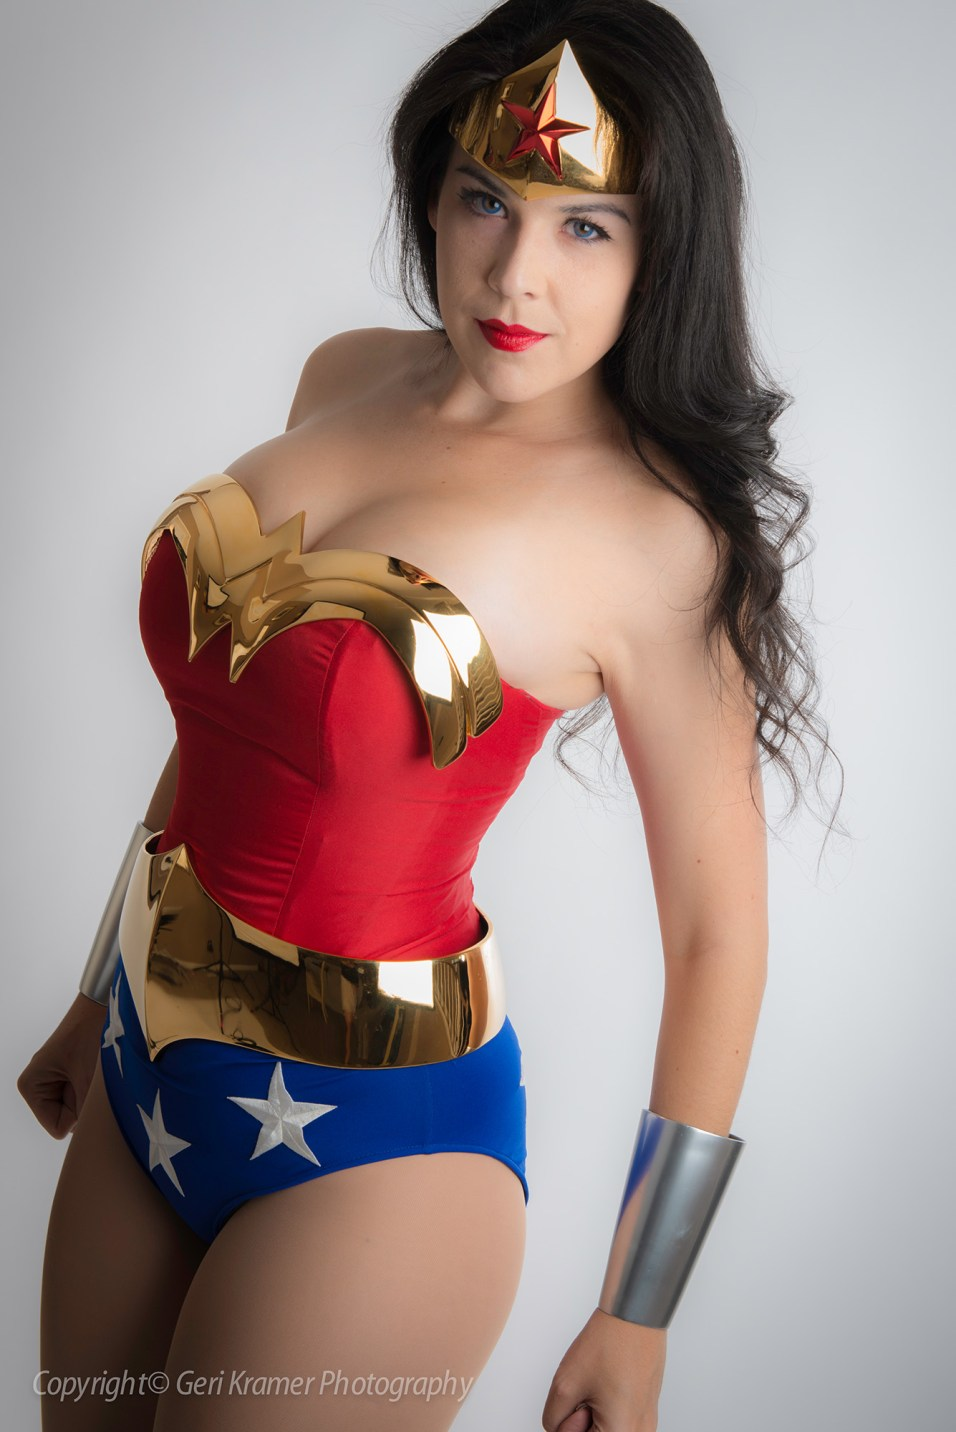 Wonder_Woman-Geri_Kramer (2)